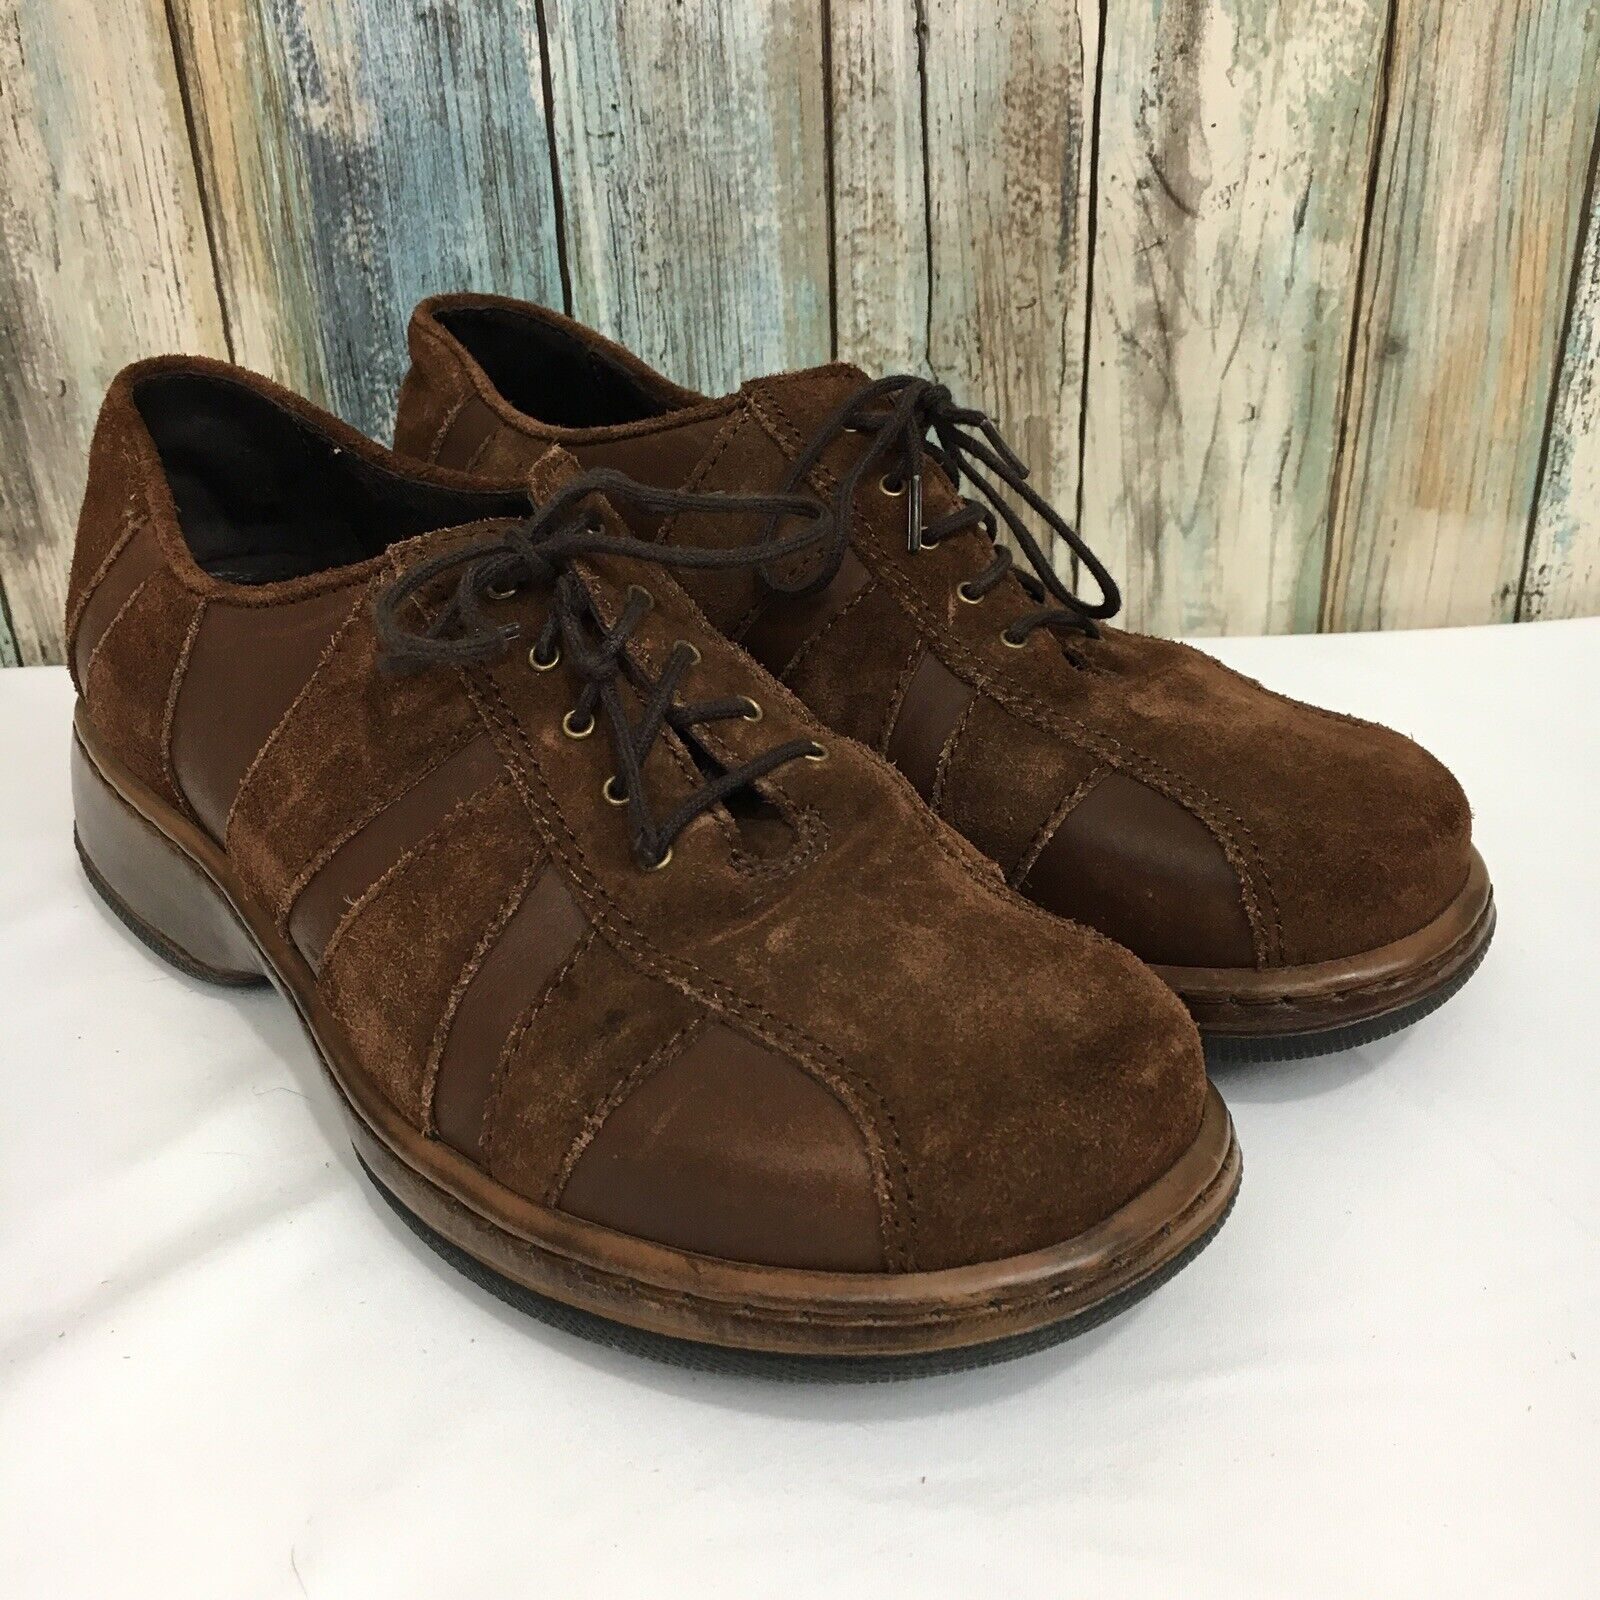 Dansko Folly Womens 39 US 8.5-9 Brown Striped Suede Leather Lace Up Oxford shoes